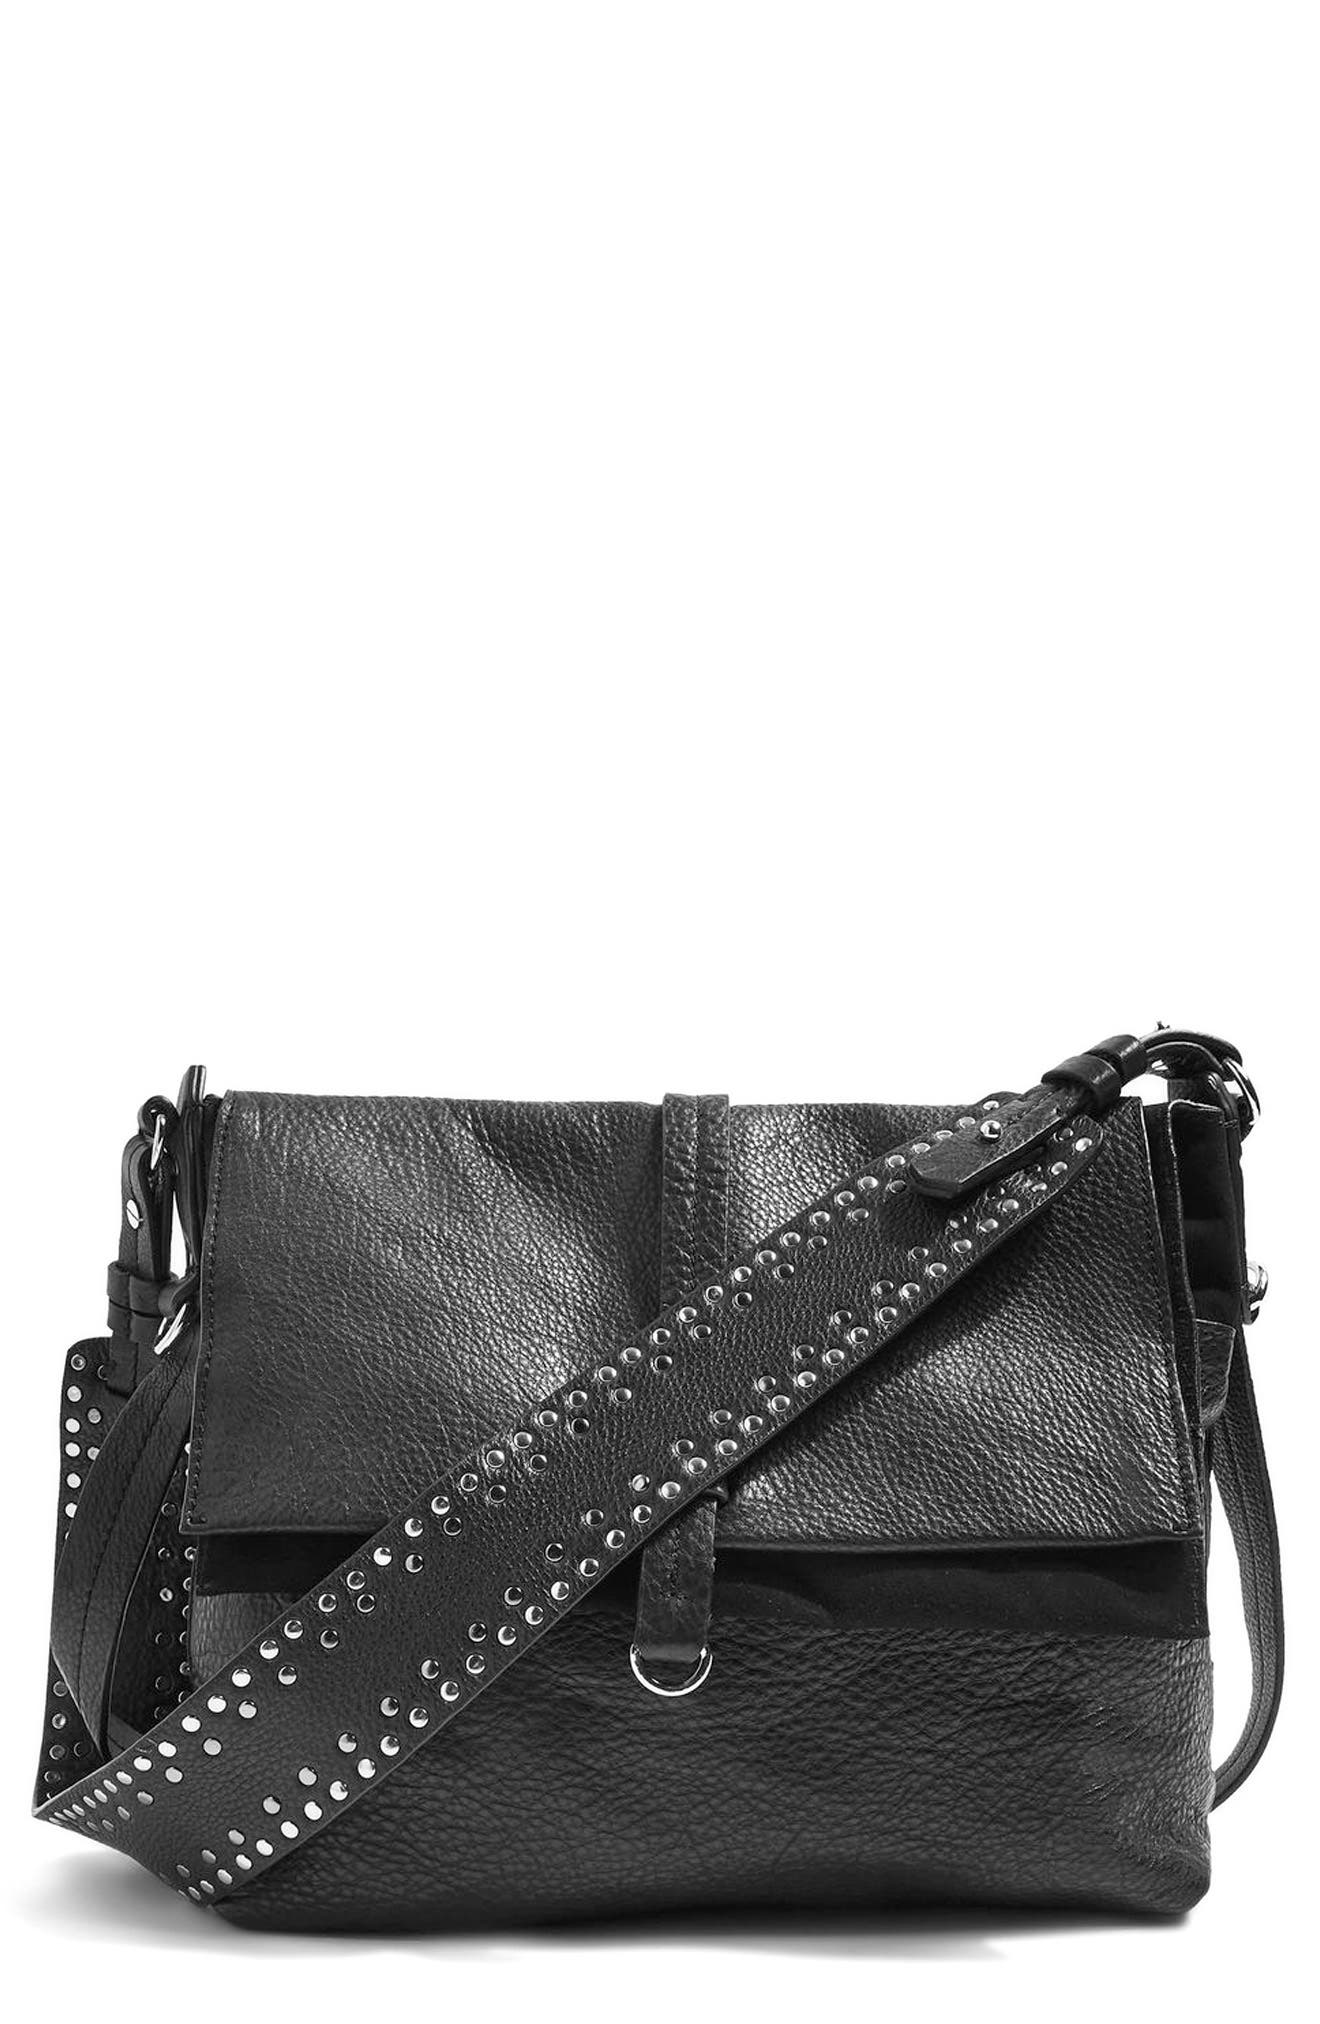 Premium Leather Studded Calfskin Hobo Bag,                         Main,                         color,